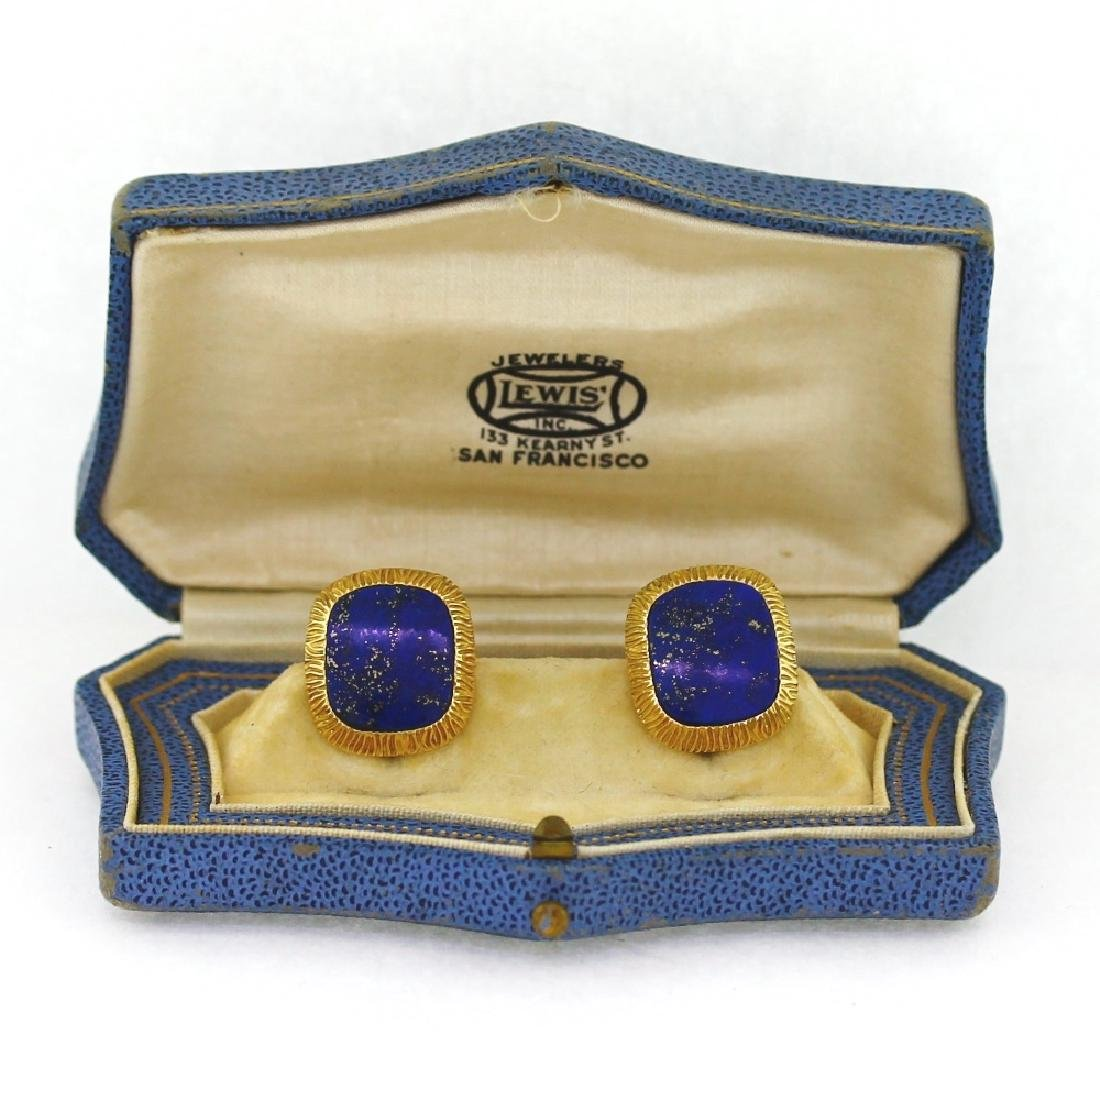 Tiffany & Co. Schlumberger 18K & Lapis Cufflinks